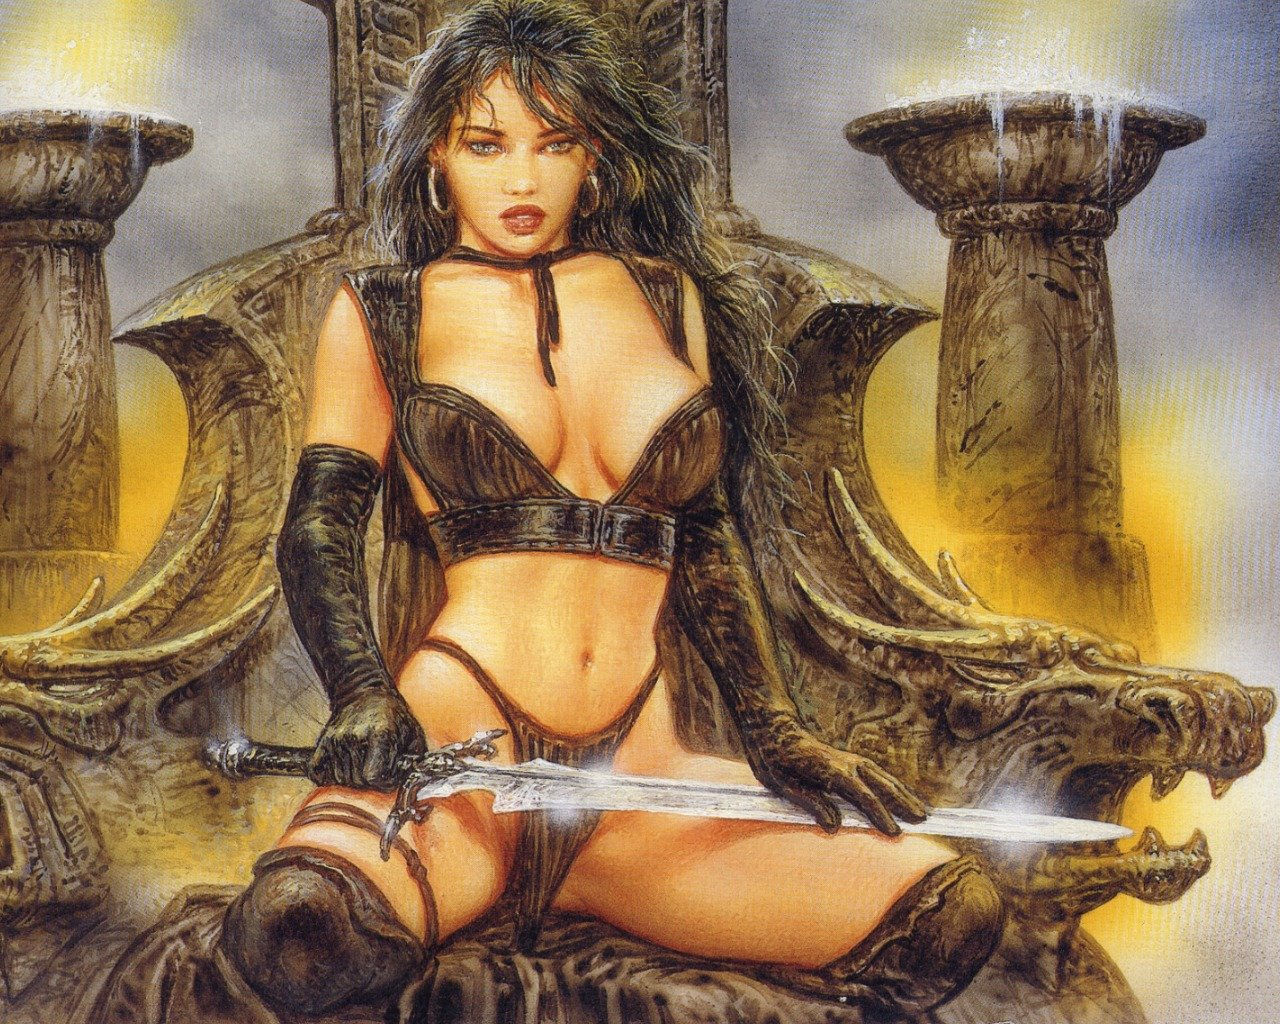 Molto Luis Royo immagini Luis Royo image HD wallpaper and background  RJ18